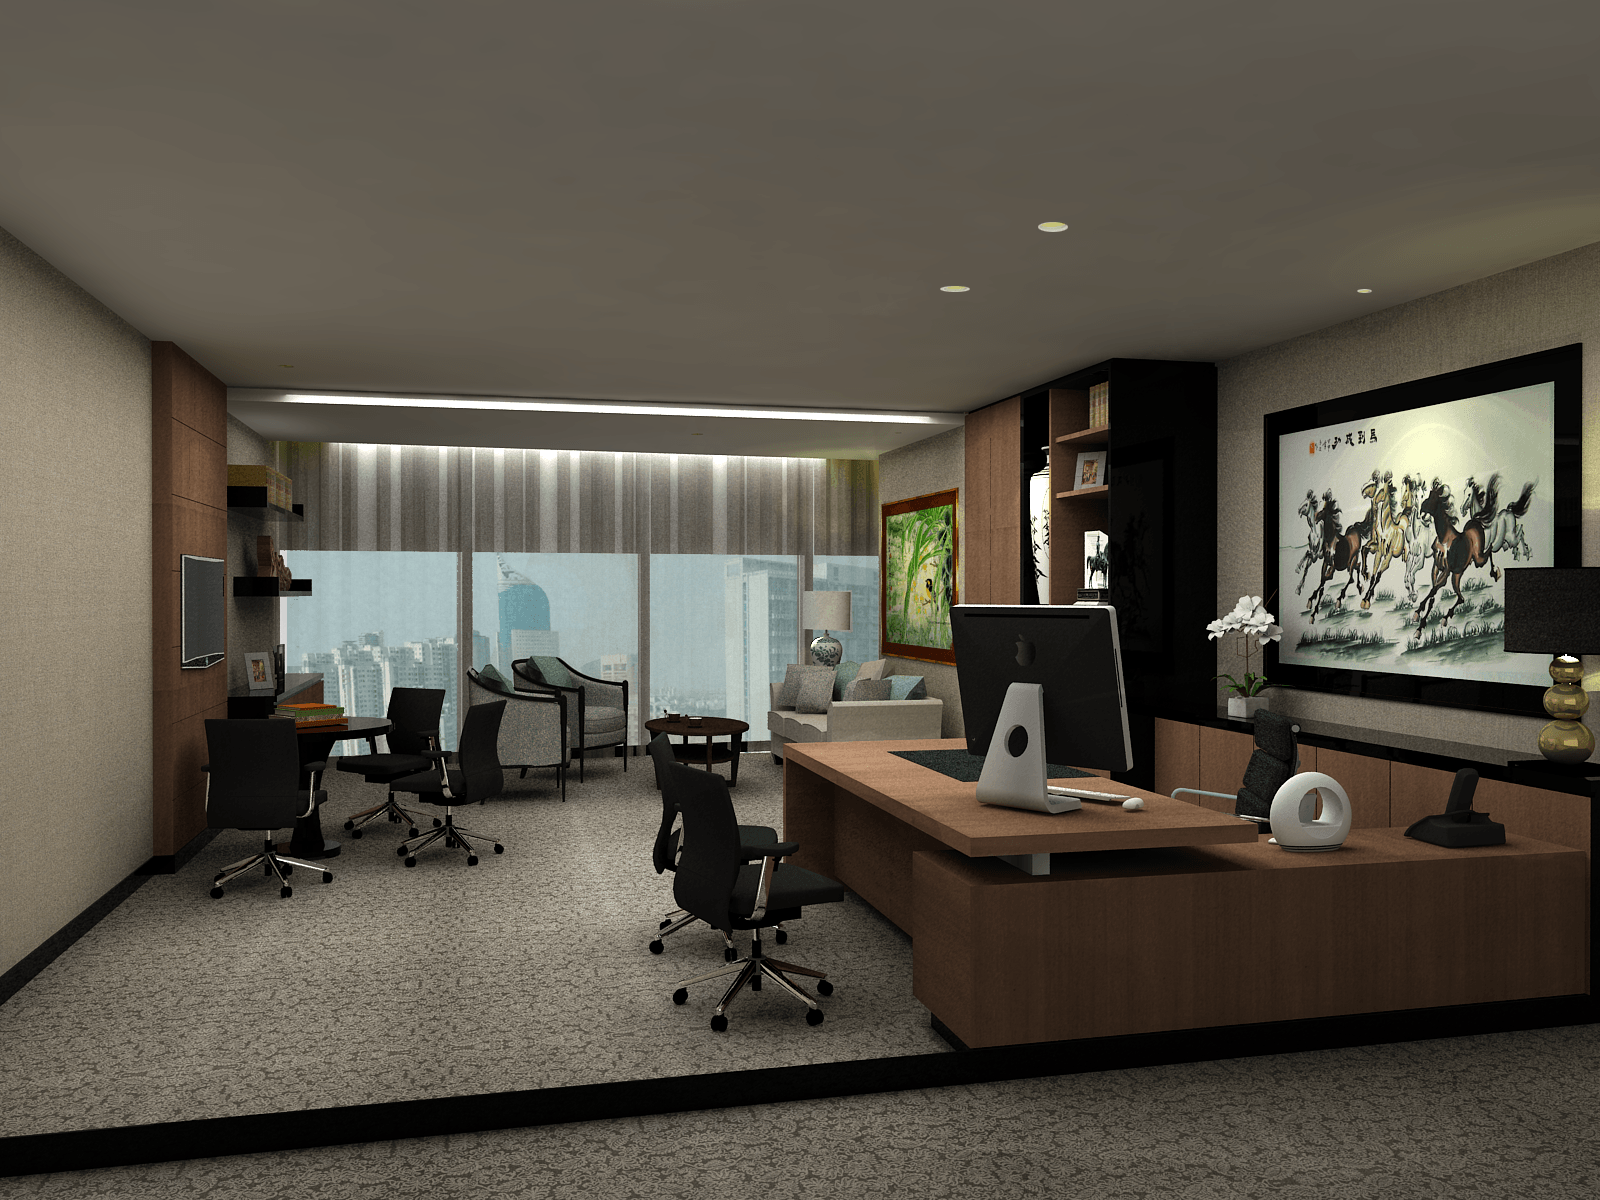 Pt. Garisprada Tcc Karet Karet Director-Men-5-Copy Klasik <P>Directors' Room. This Room Is A Little Bit Lighter And Simple Compared To The Ceo Room In Order To Show The Hierarchy Of The Organization Structure.</p> 25754